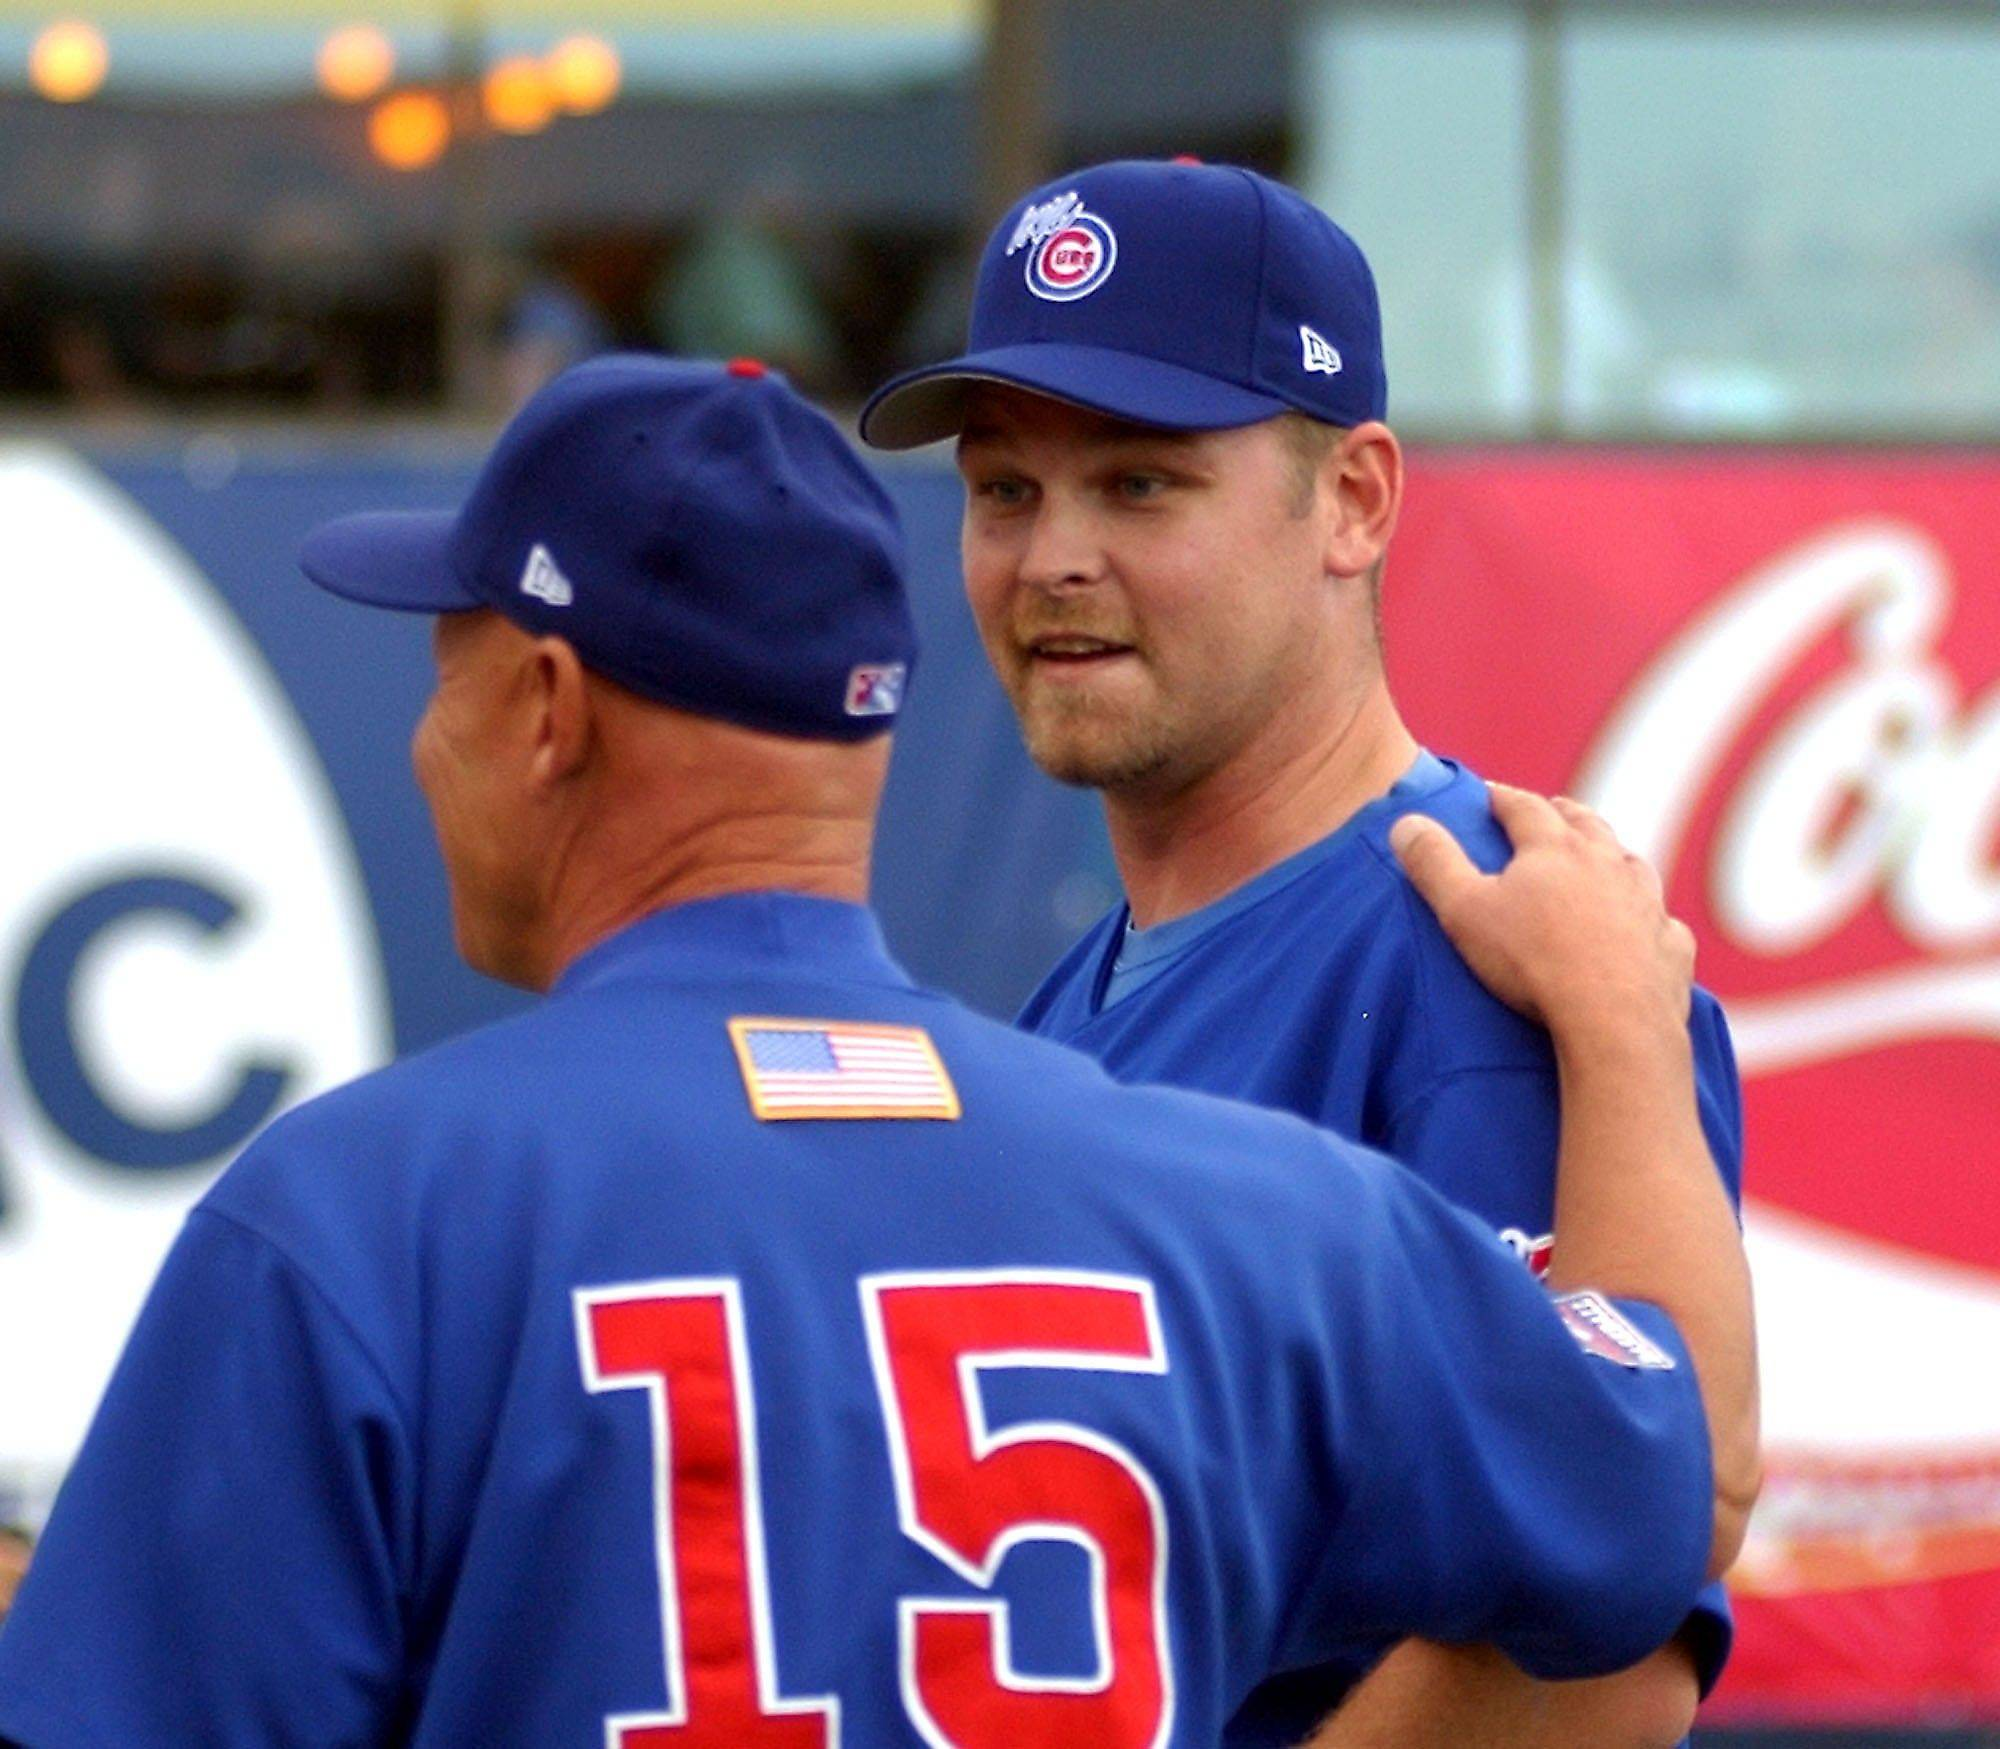 Chicago Cubs pitcher Kerry Wood talks with Iowa Cubs manager Mike Quade before a rehab outing against the New Orleans Zephyrs Monday.